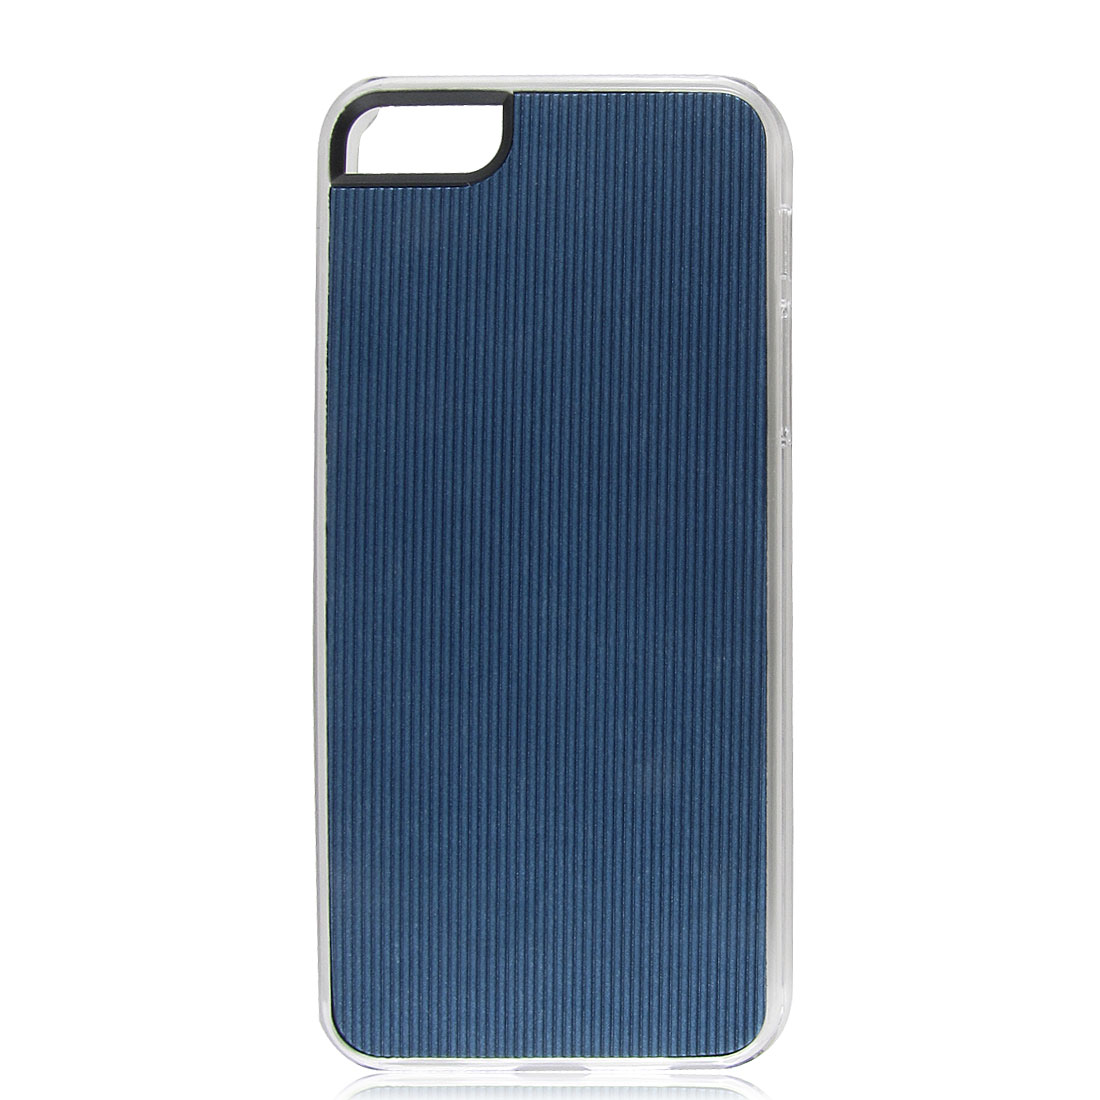 Dark Blue Faux Leather Coated Pinstripe Hard Back Case Cover for iPhone 5 5G 5th